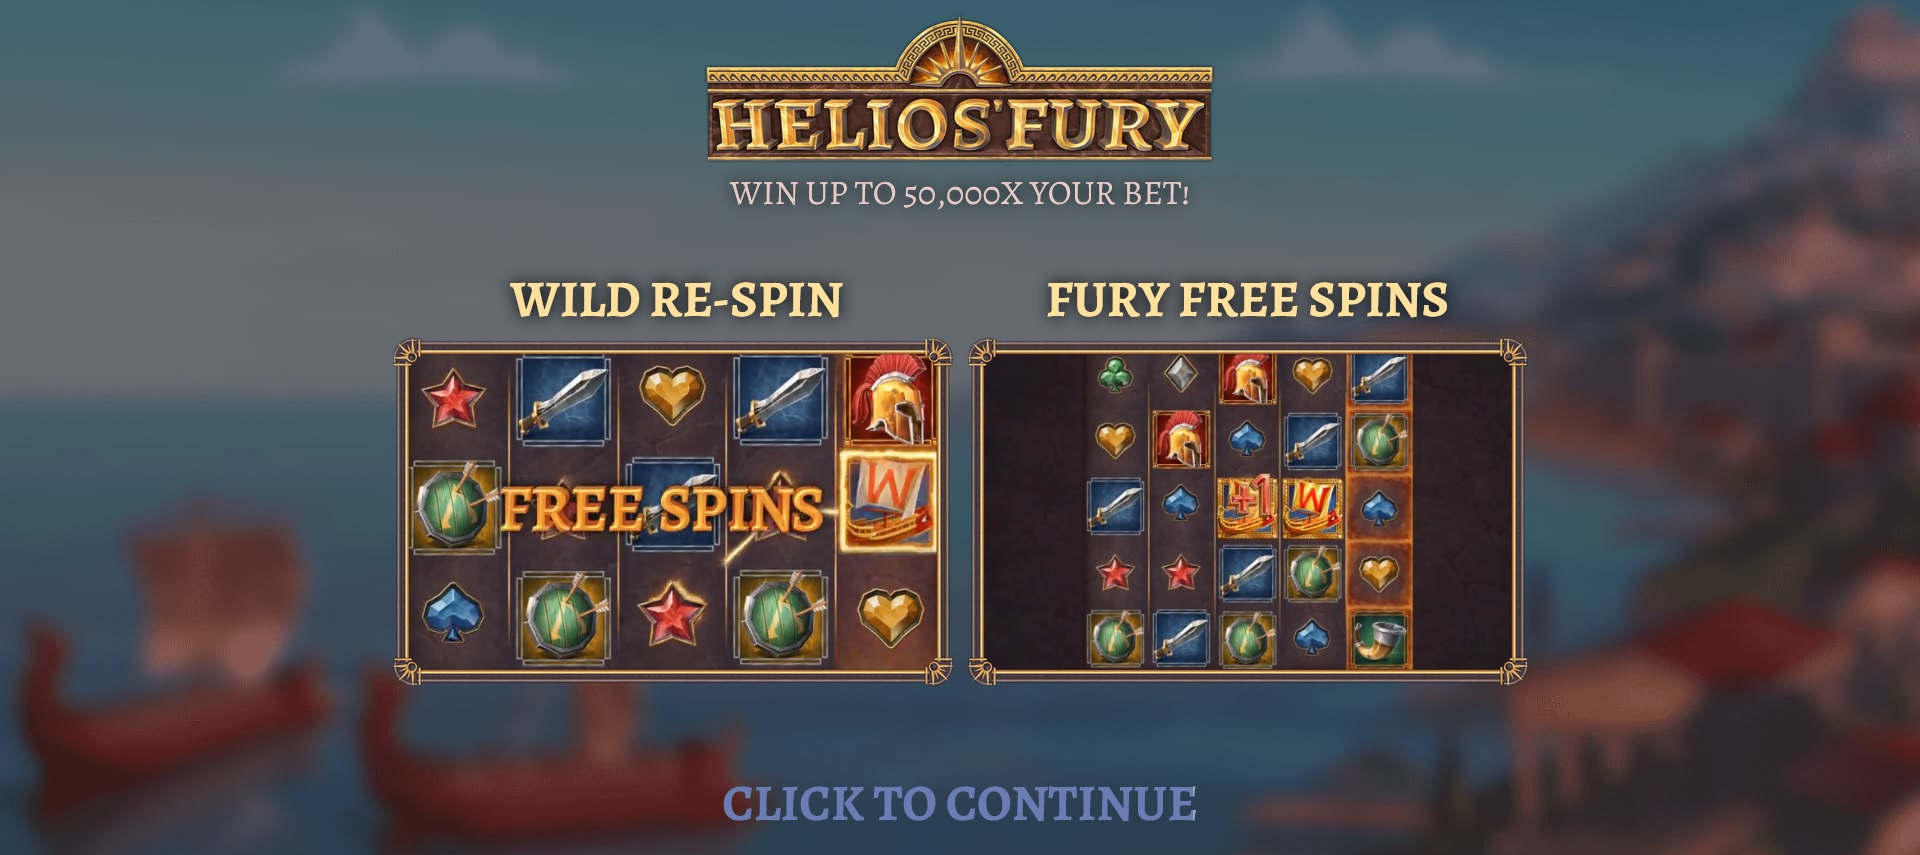 Special Features on helios fury